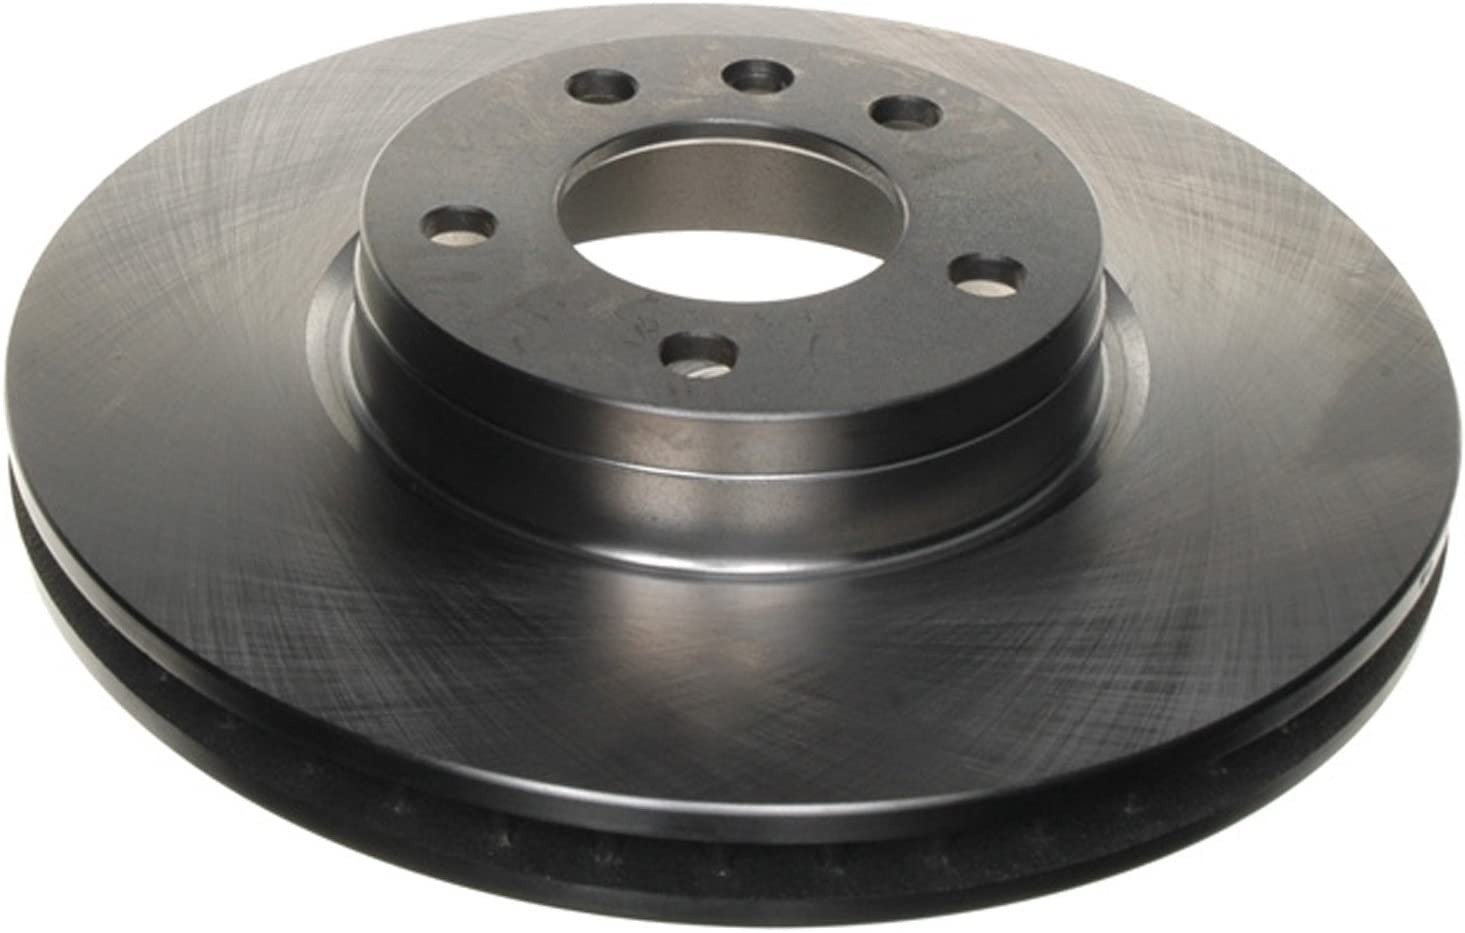 ACDelco Silver 67% OFF of fixed price 18A815A Front Challenge the lowest price of Japan Brake Rotor Disc